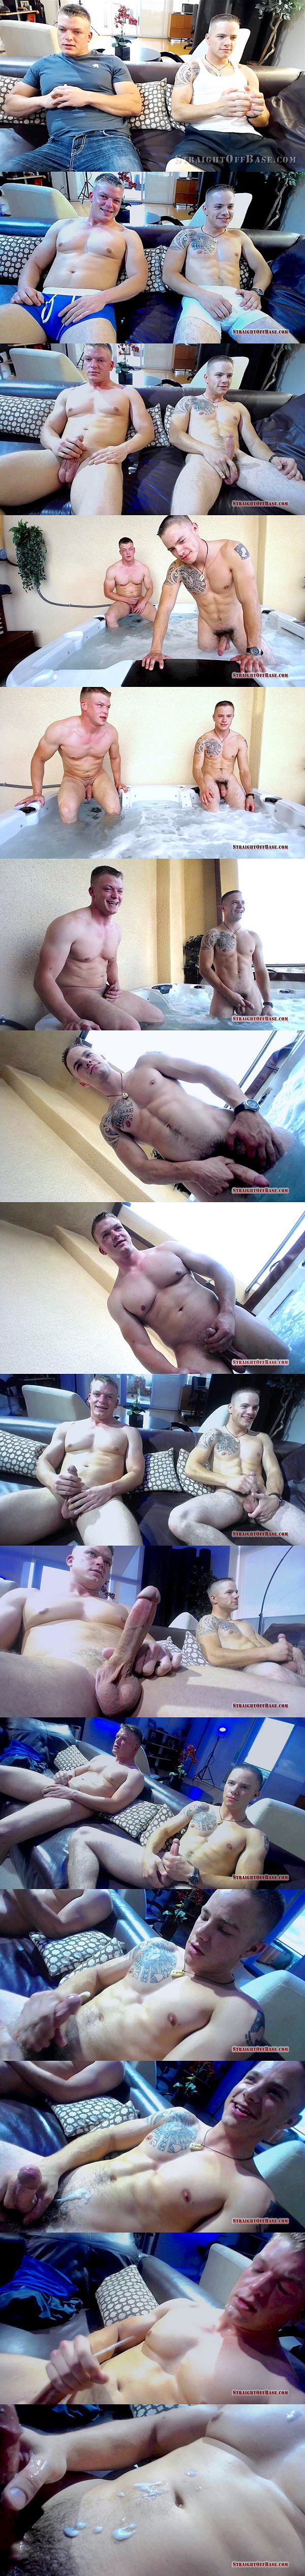 Hot straight military jock Corporal Jax and Sergeant Ryker in Webcam Jacuzzi Jerkoff at Straightoffbase 02